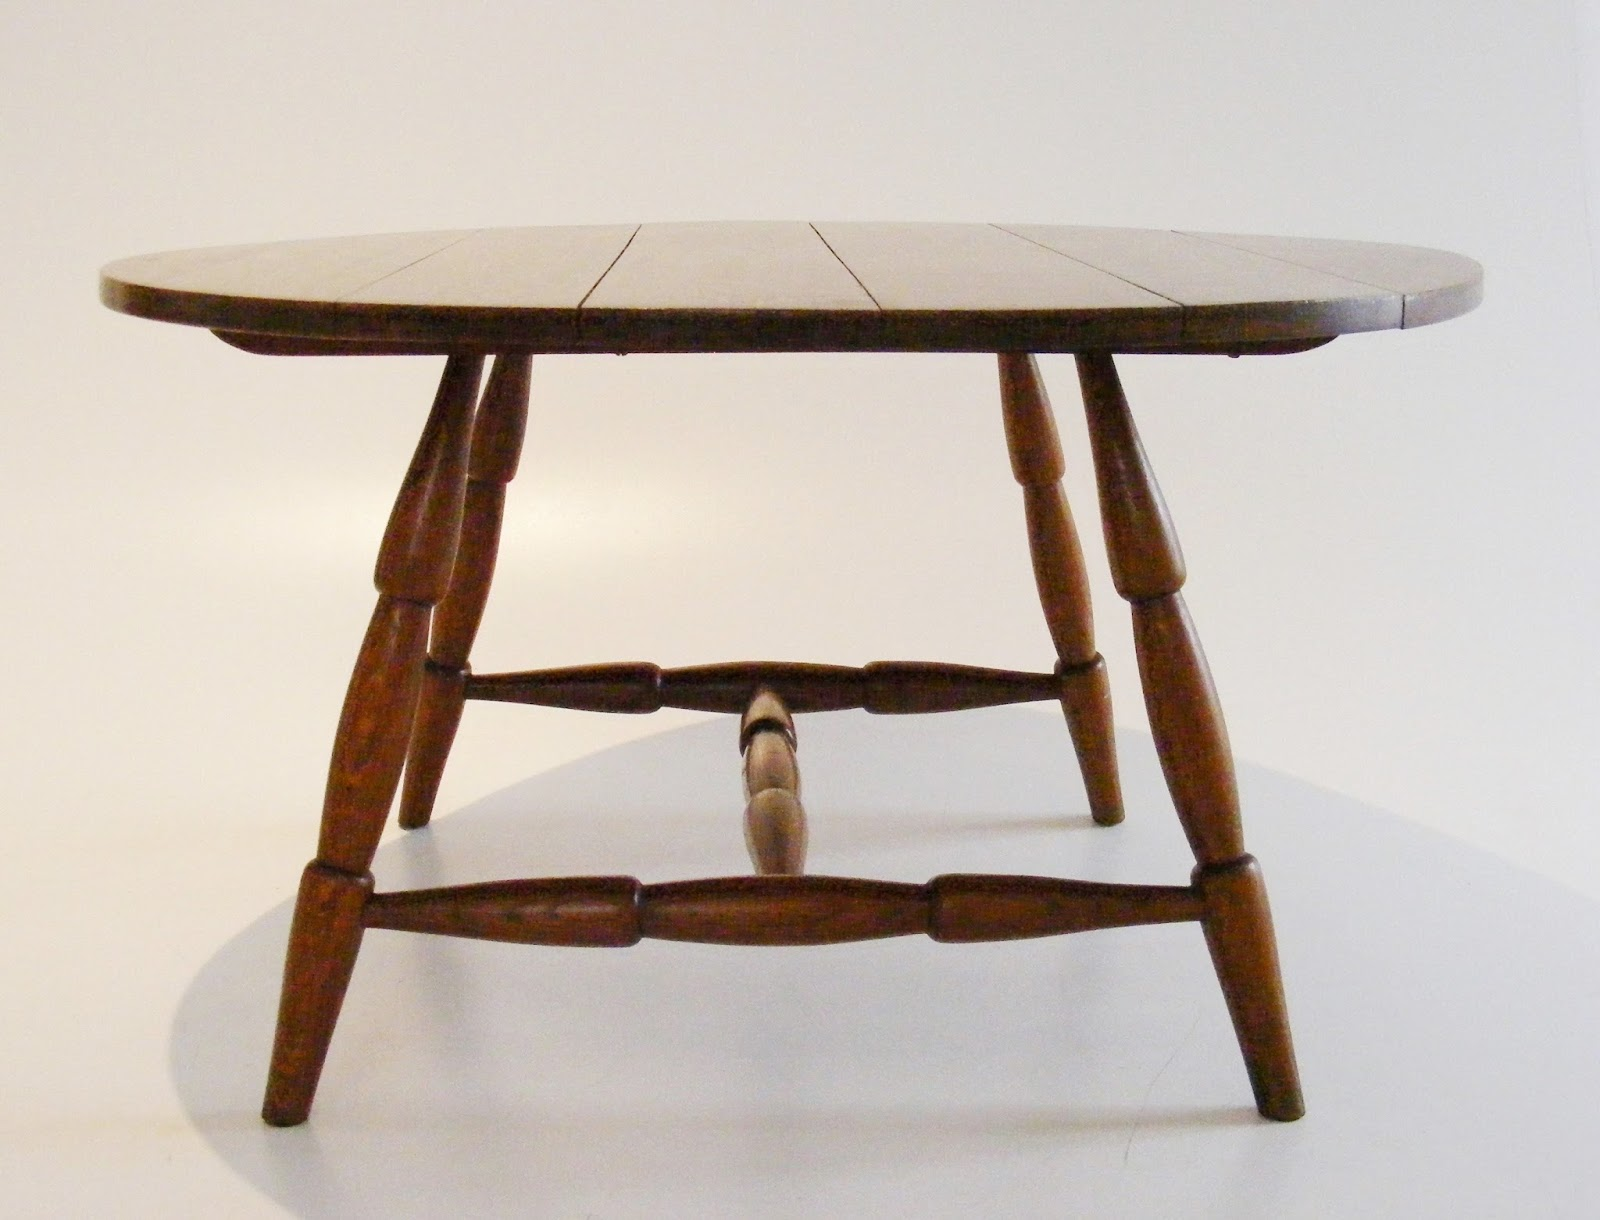 - VAMP FURNITURE: A Solid Oak Vintage Coffee Table Just Unpacked At